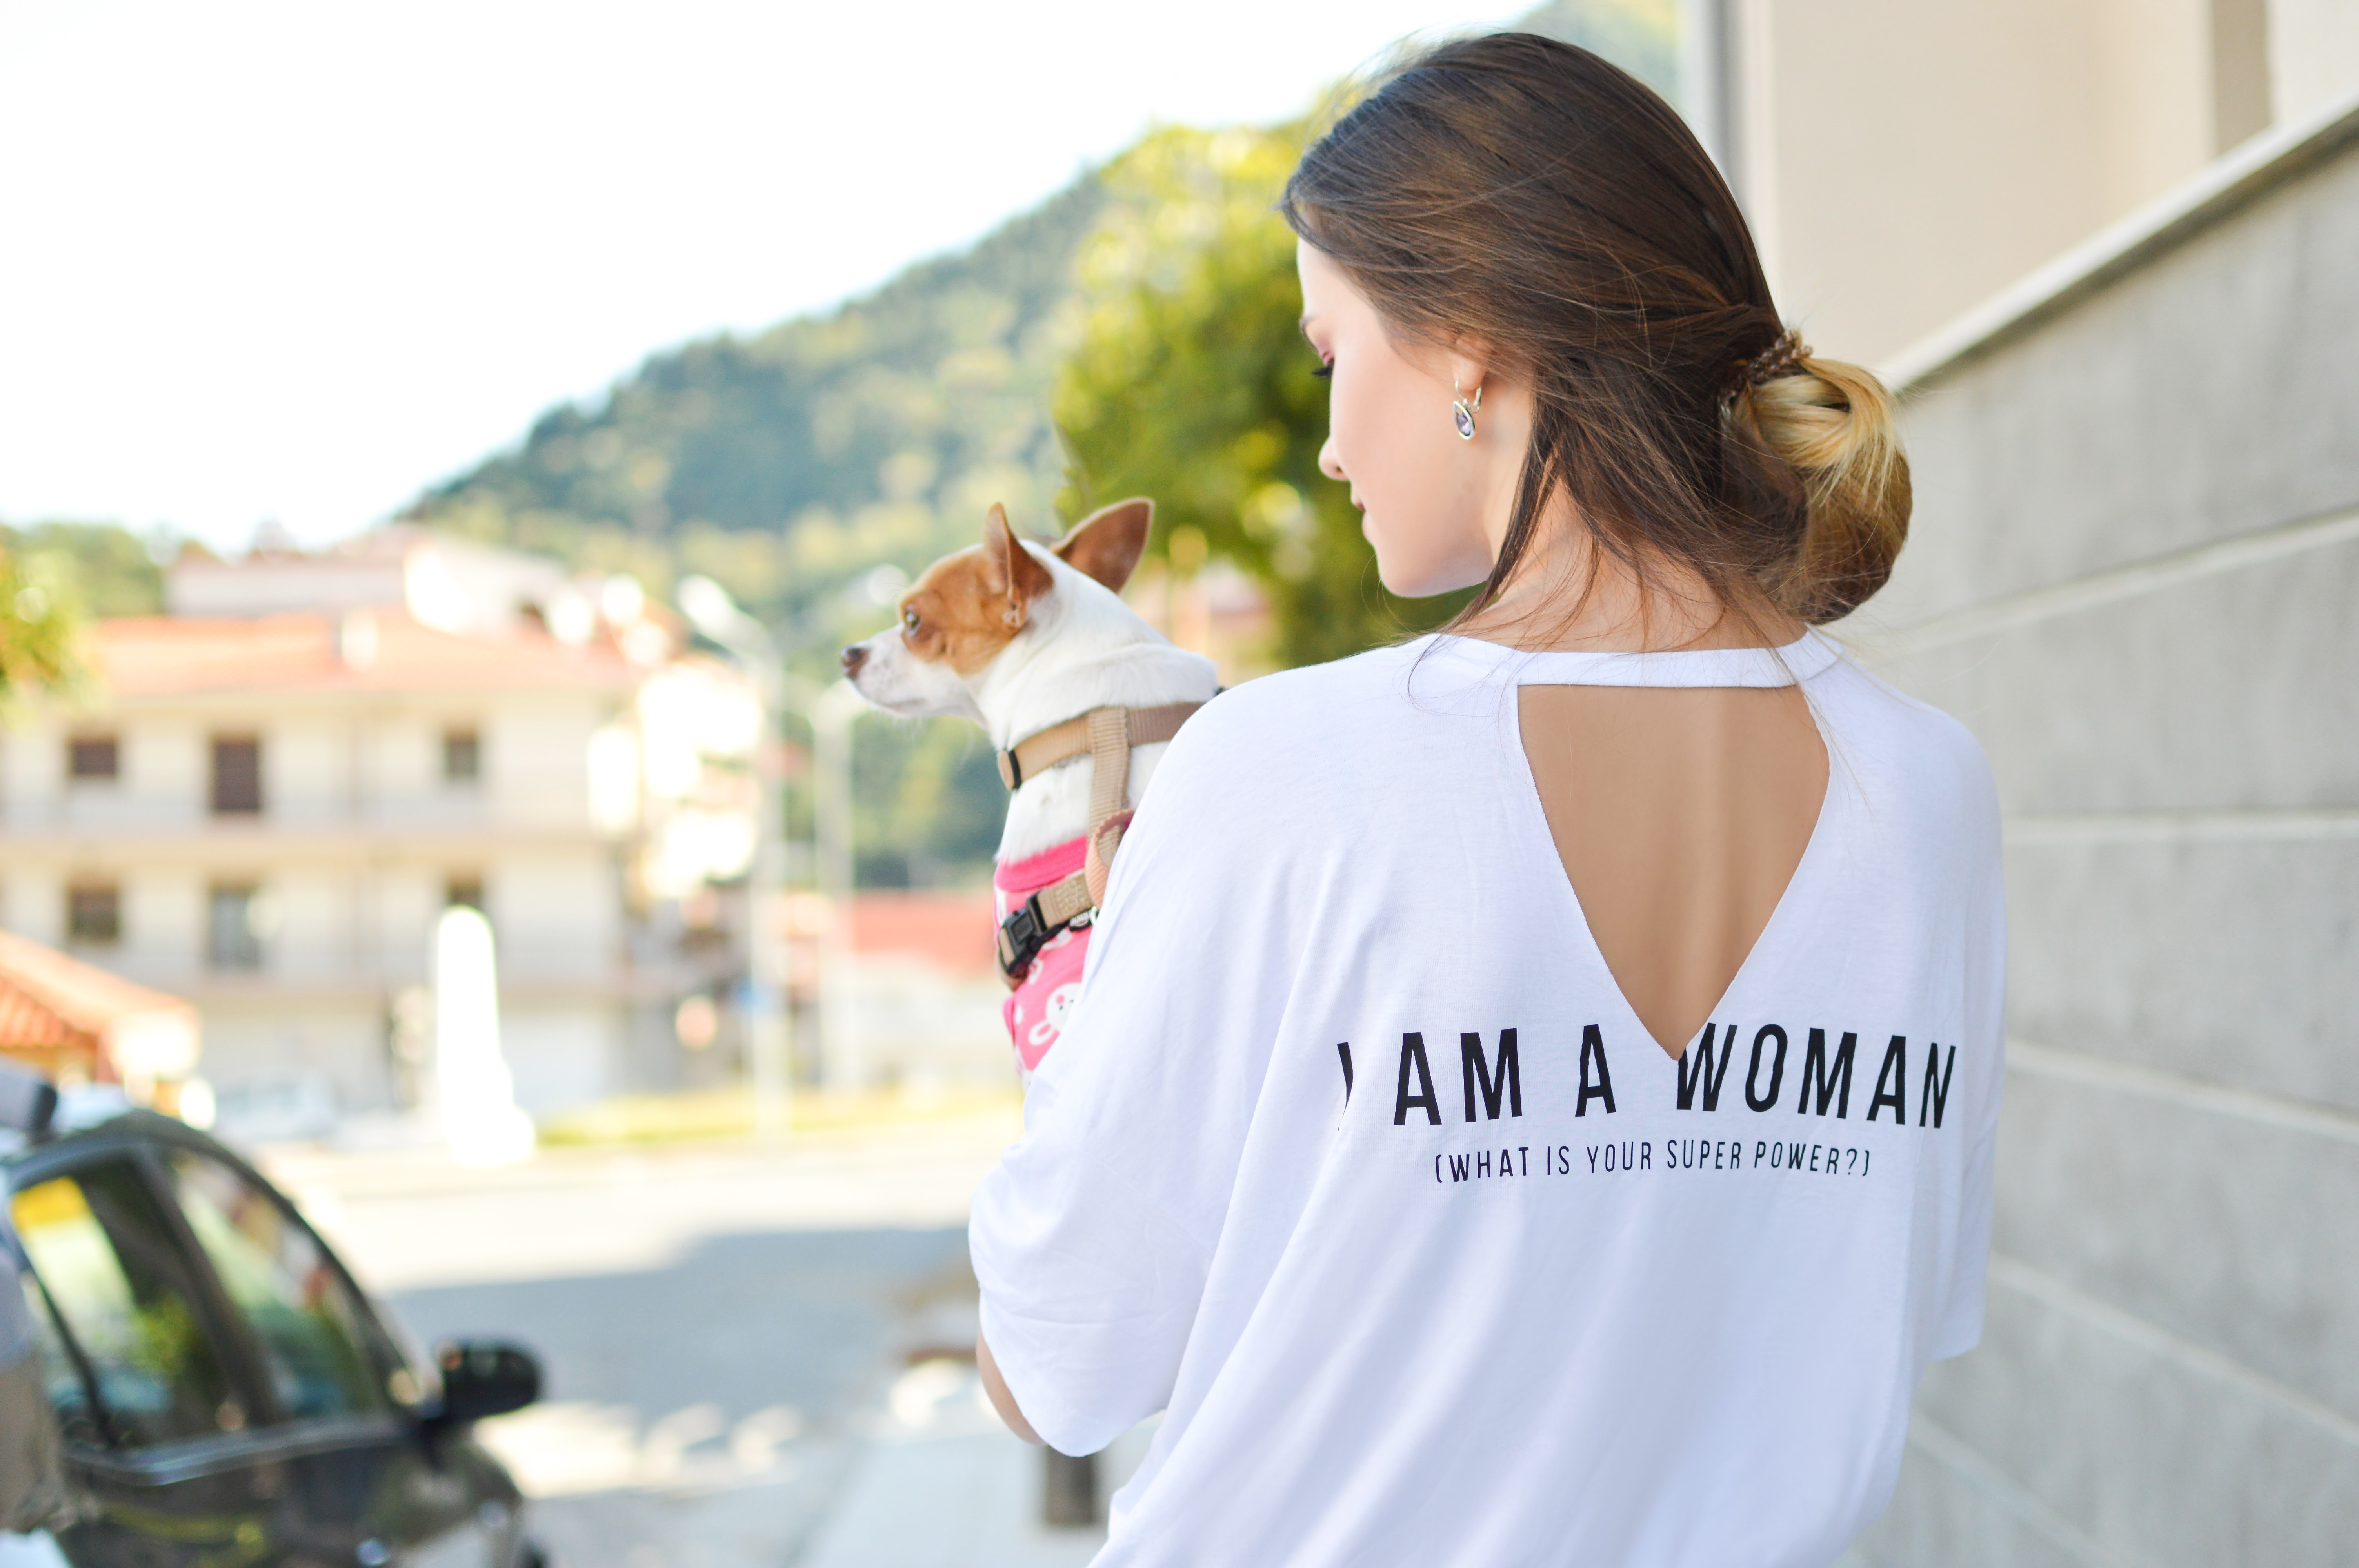 woman wearing white elbow-sleeved shirt while holding dog near concrete building during daytime